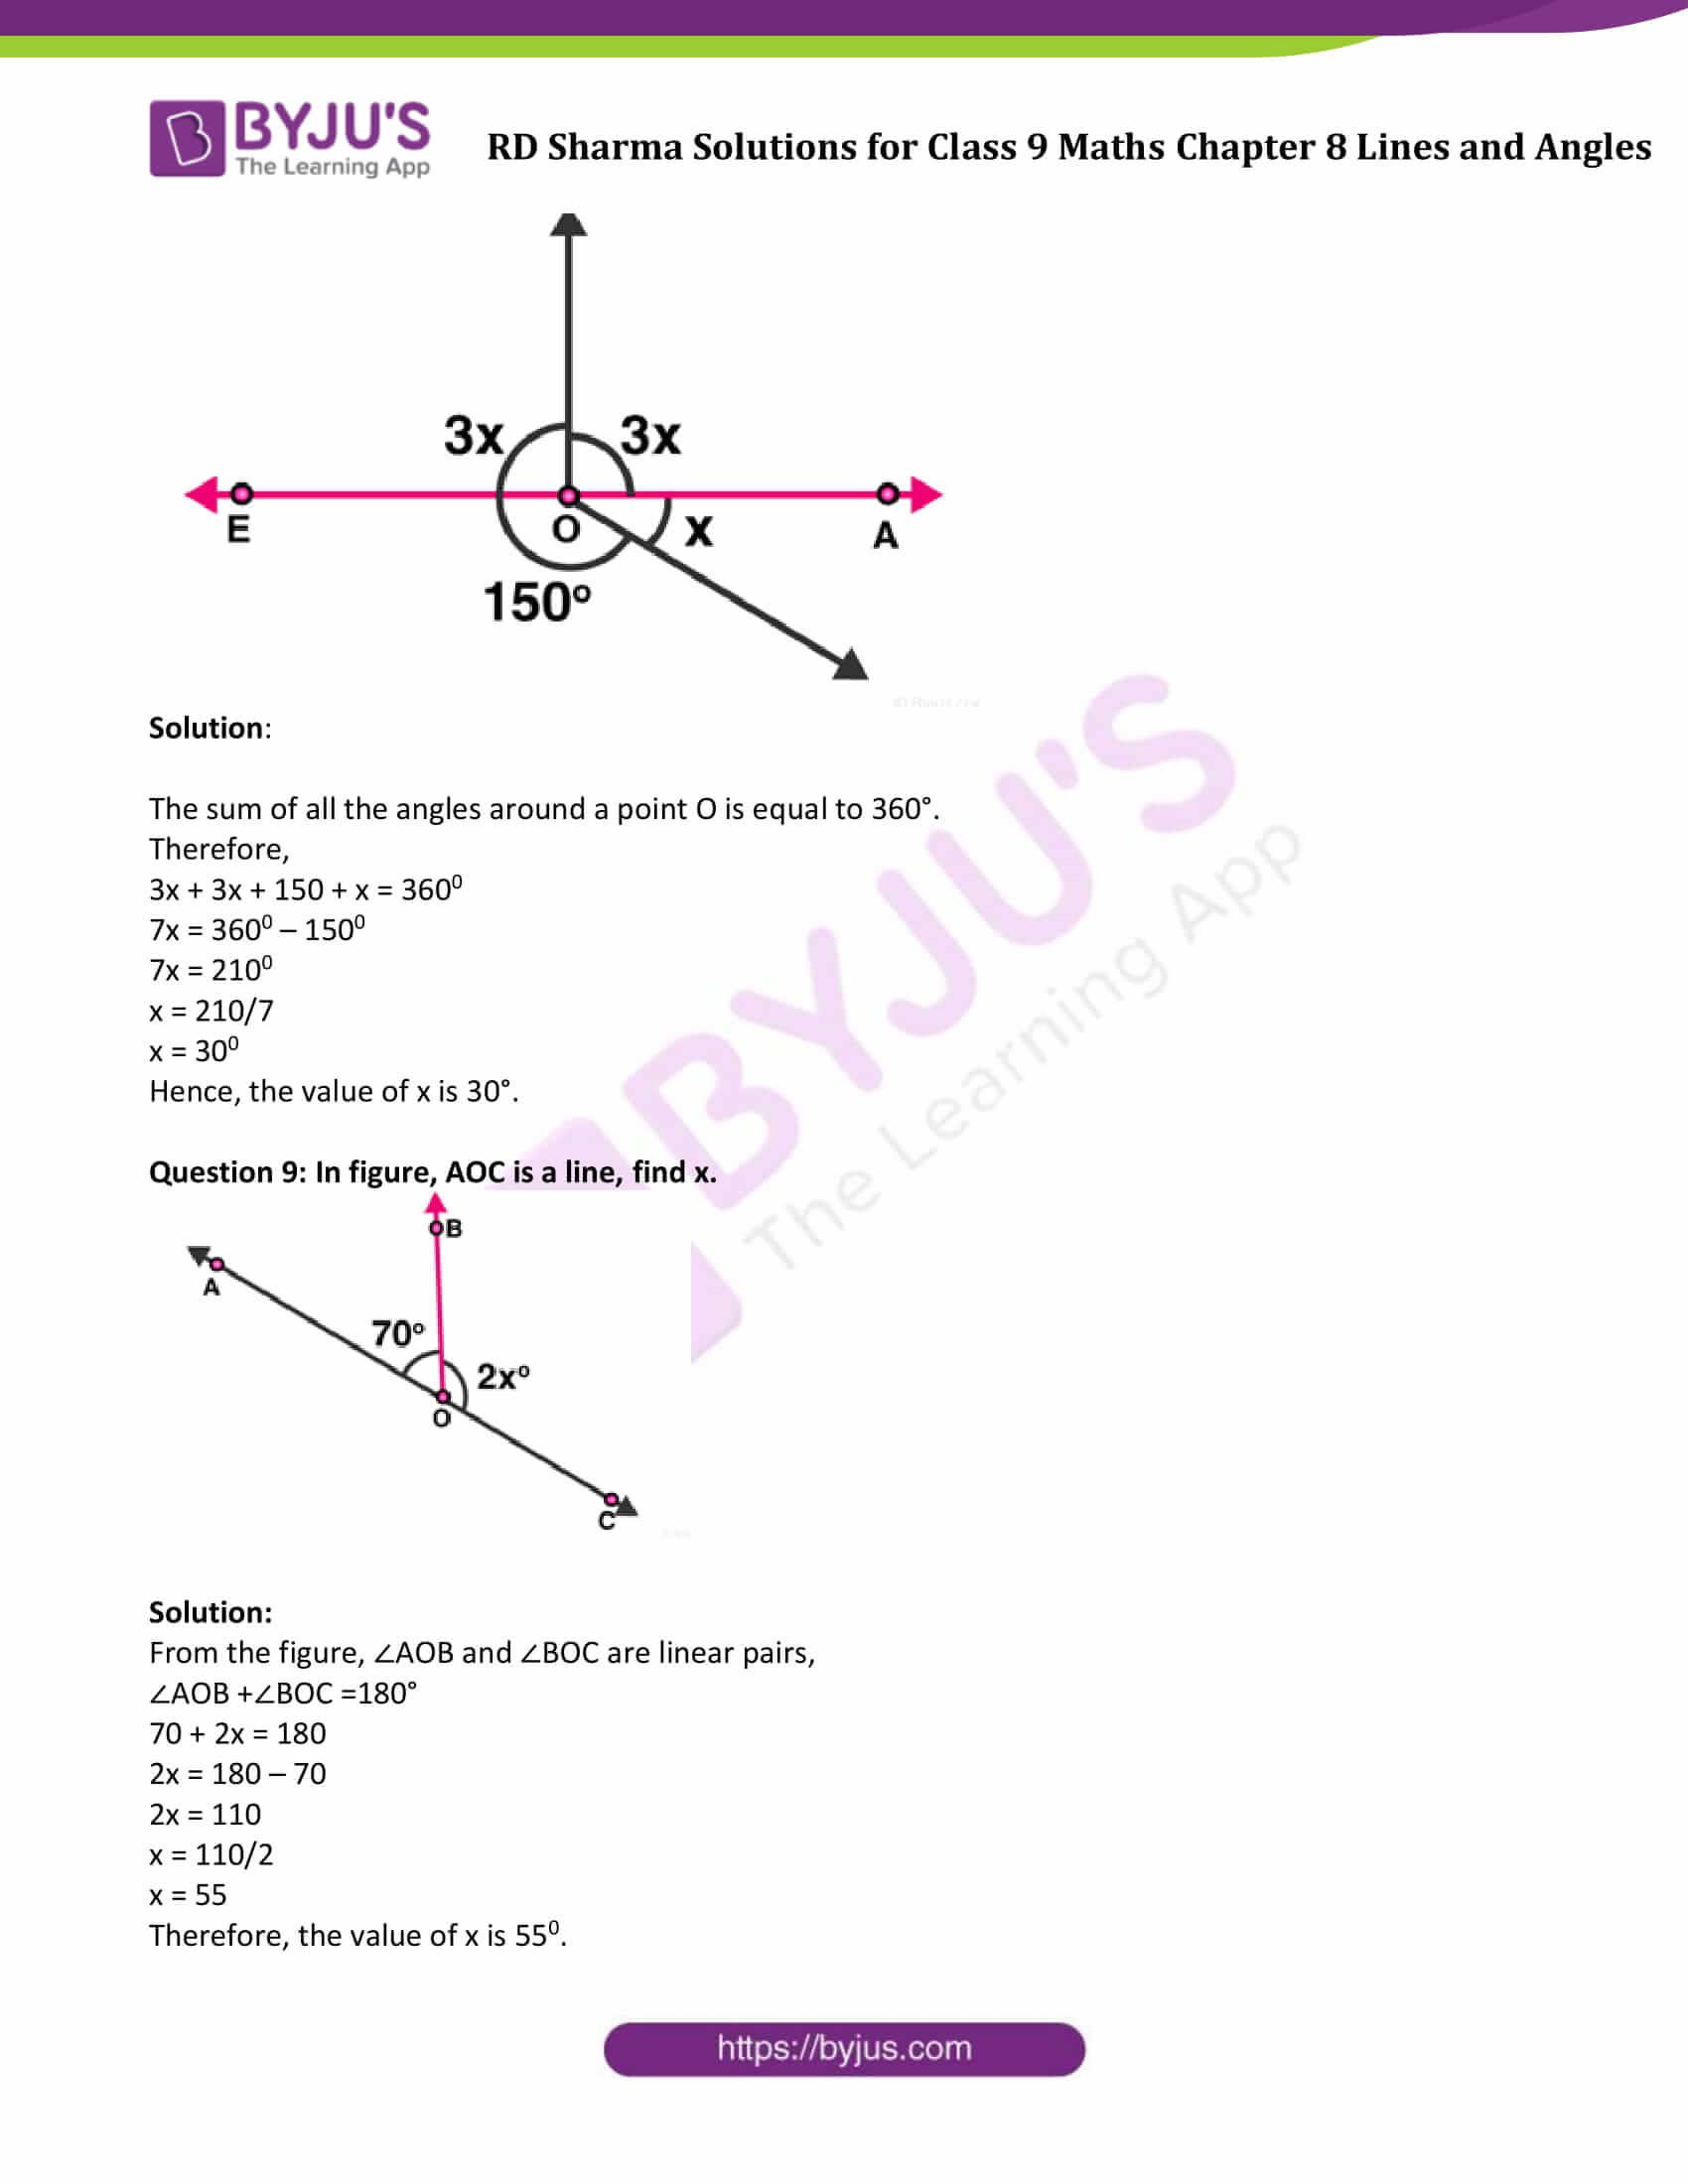 RD Sharma Solution class 9 Maths Chapter 8 Lines and Angles 09